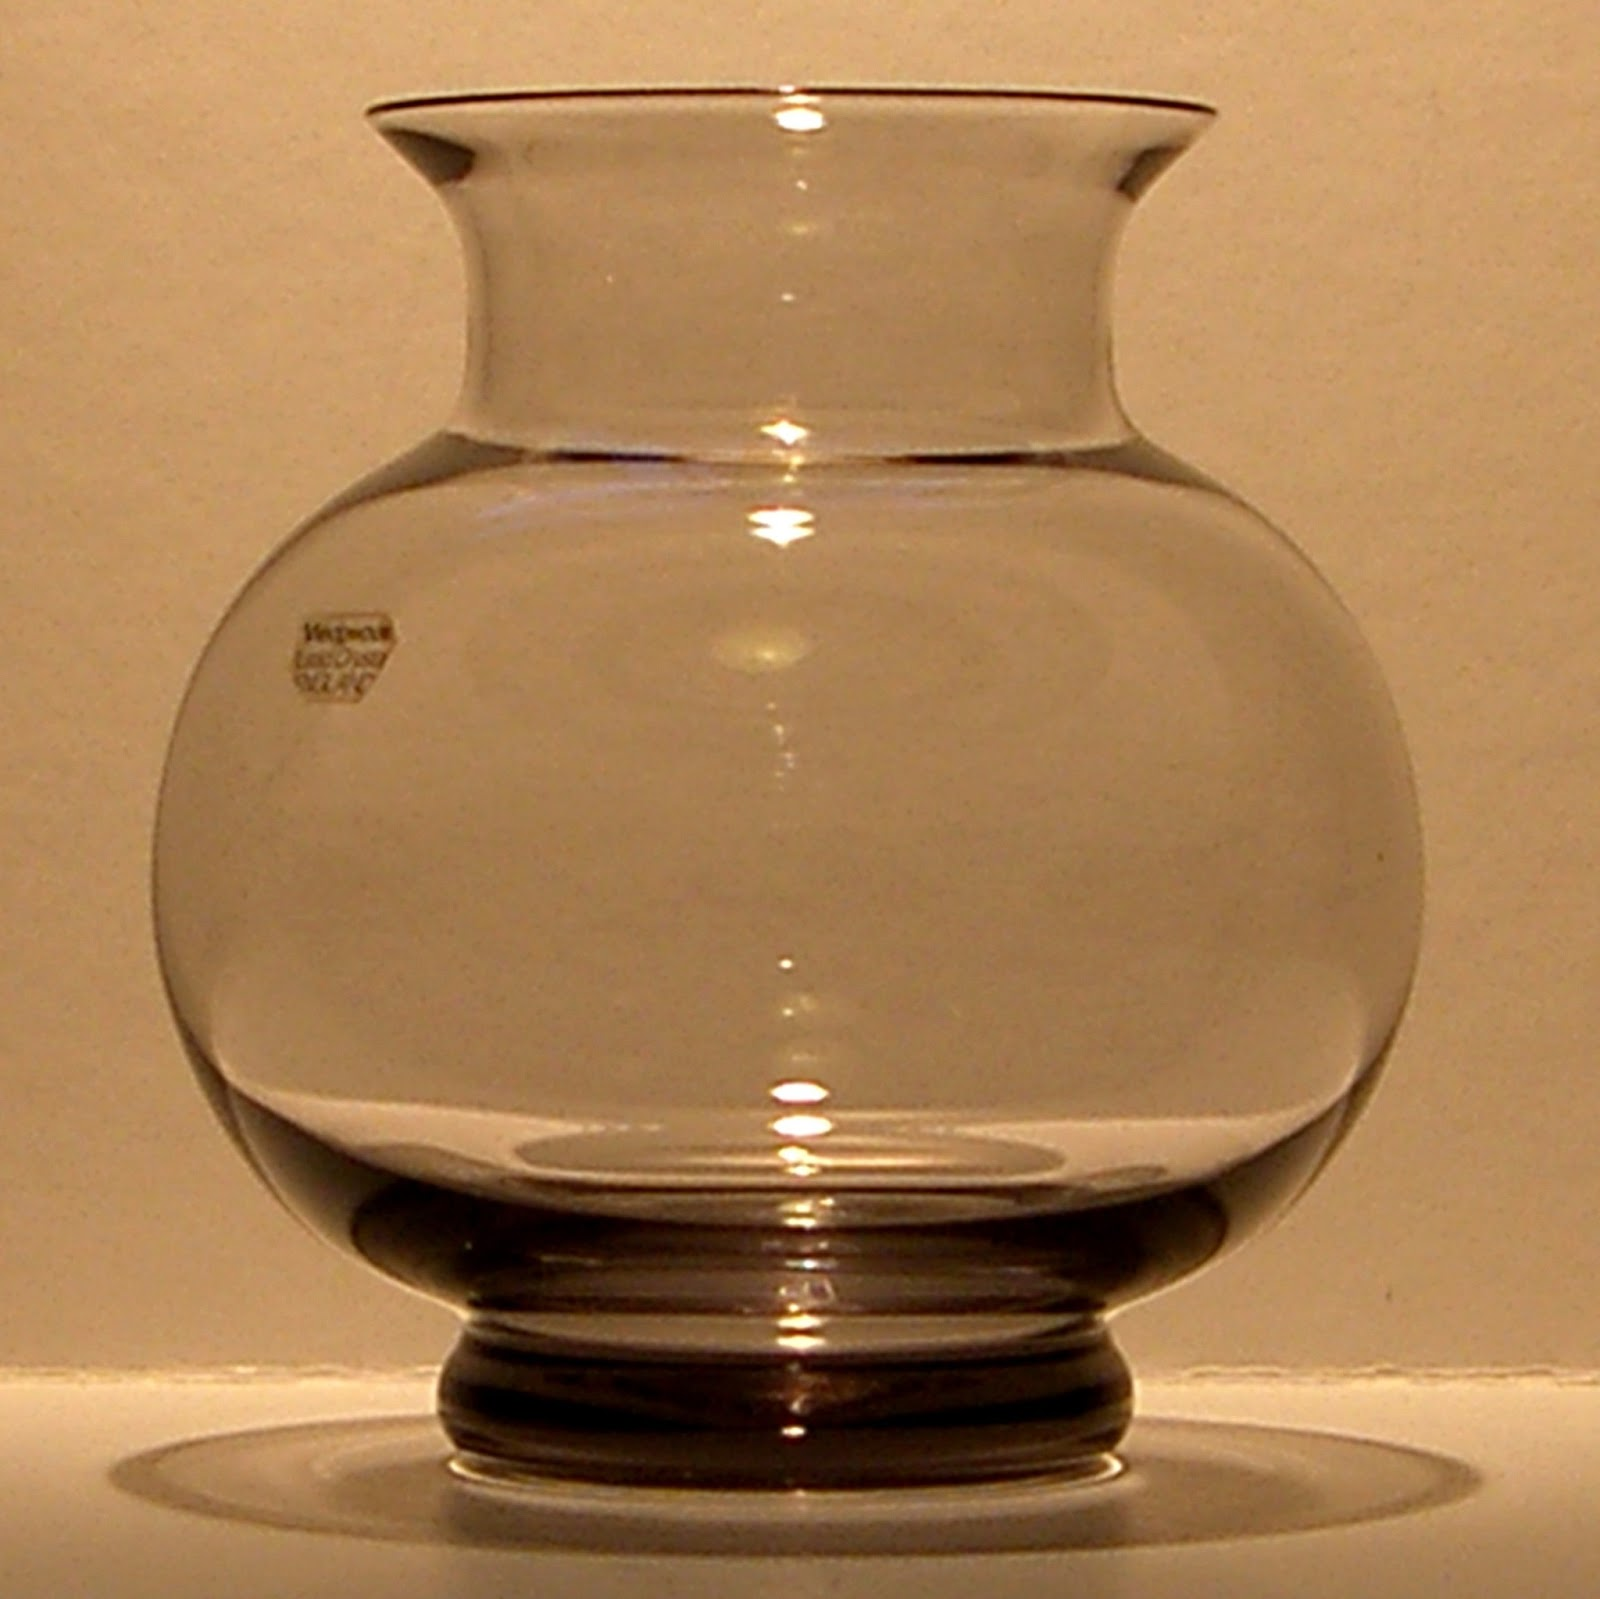 Frank thrower glass designs 1980s wedgwood crystal fjt5 orson chinese vases reviewsmspy